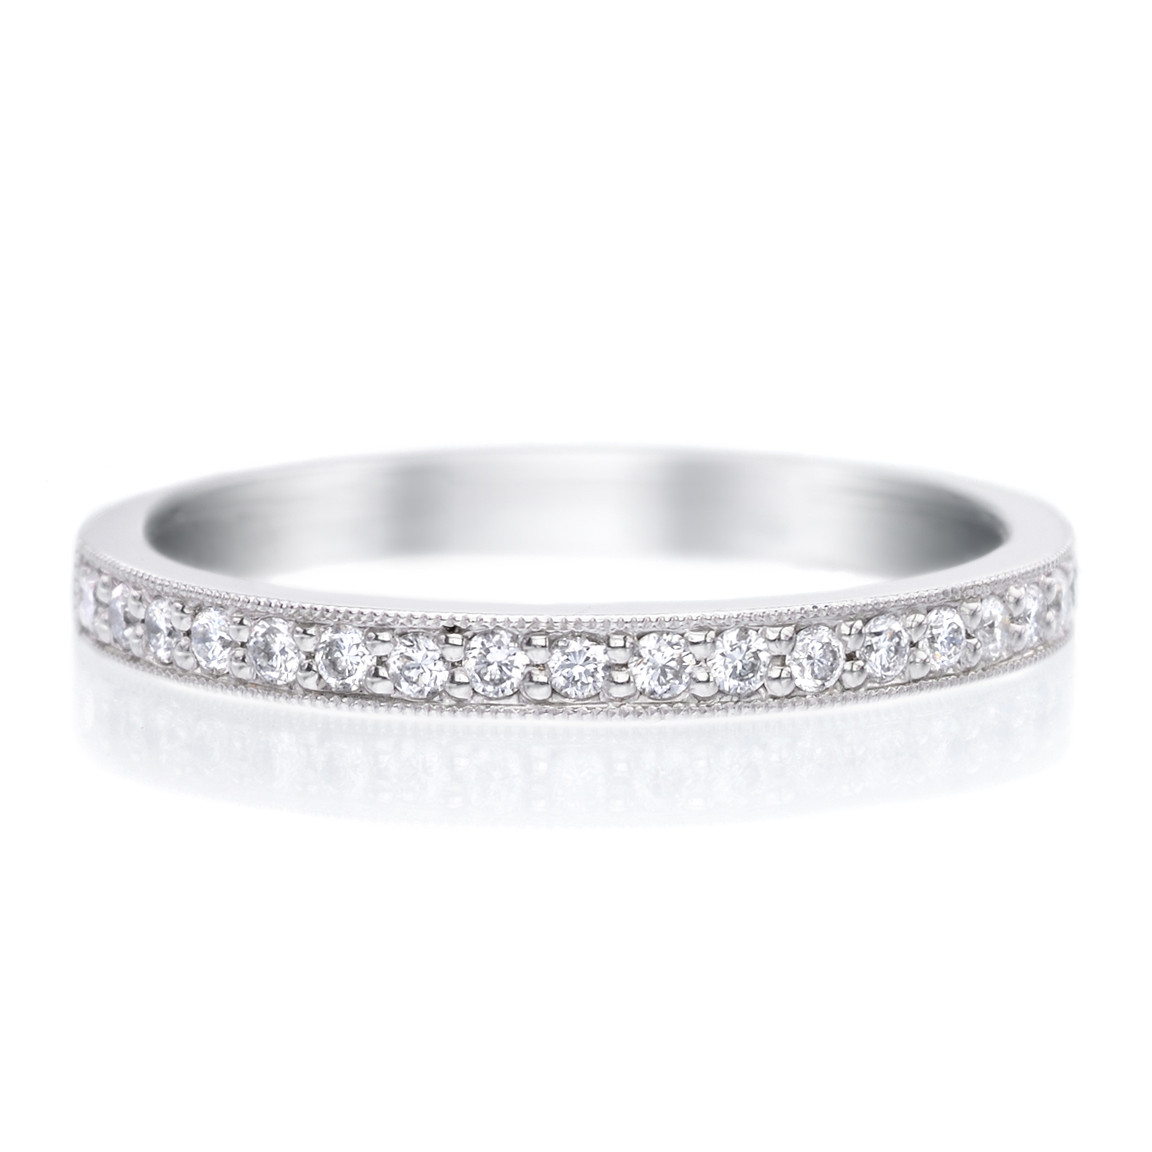 Long's Platinum Bead Set Diamond Band with Milgrain